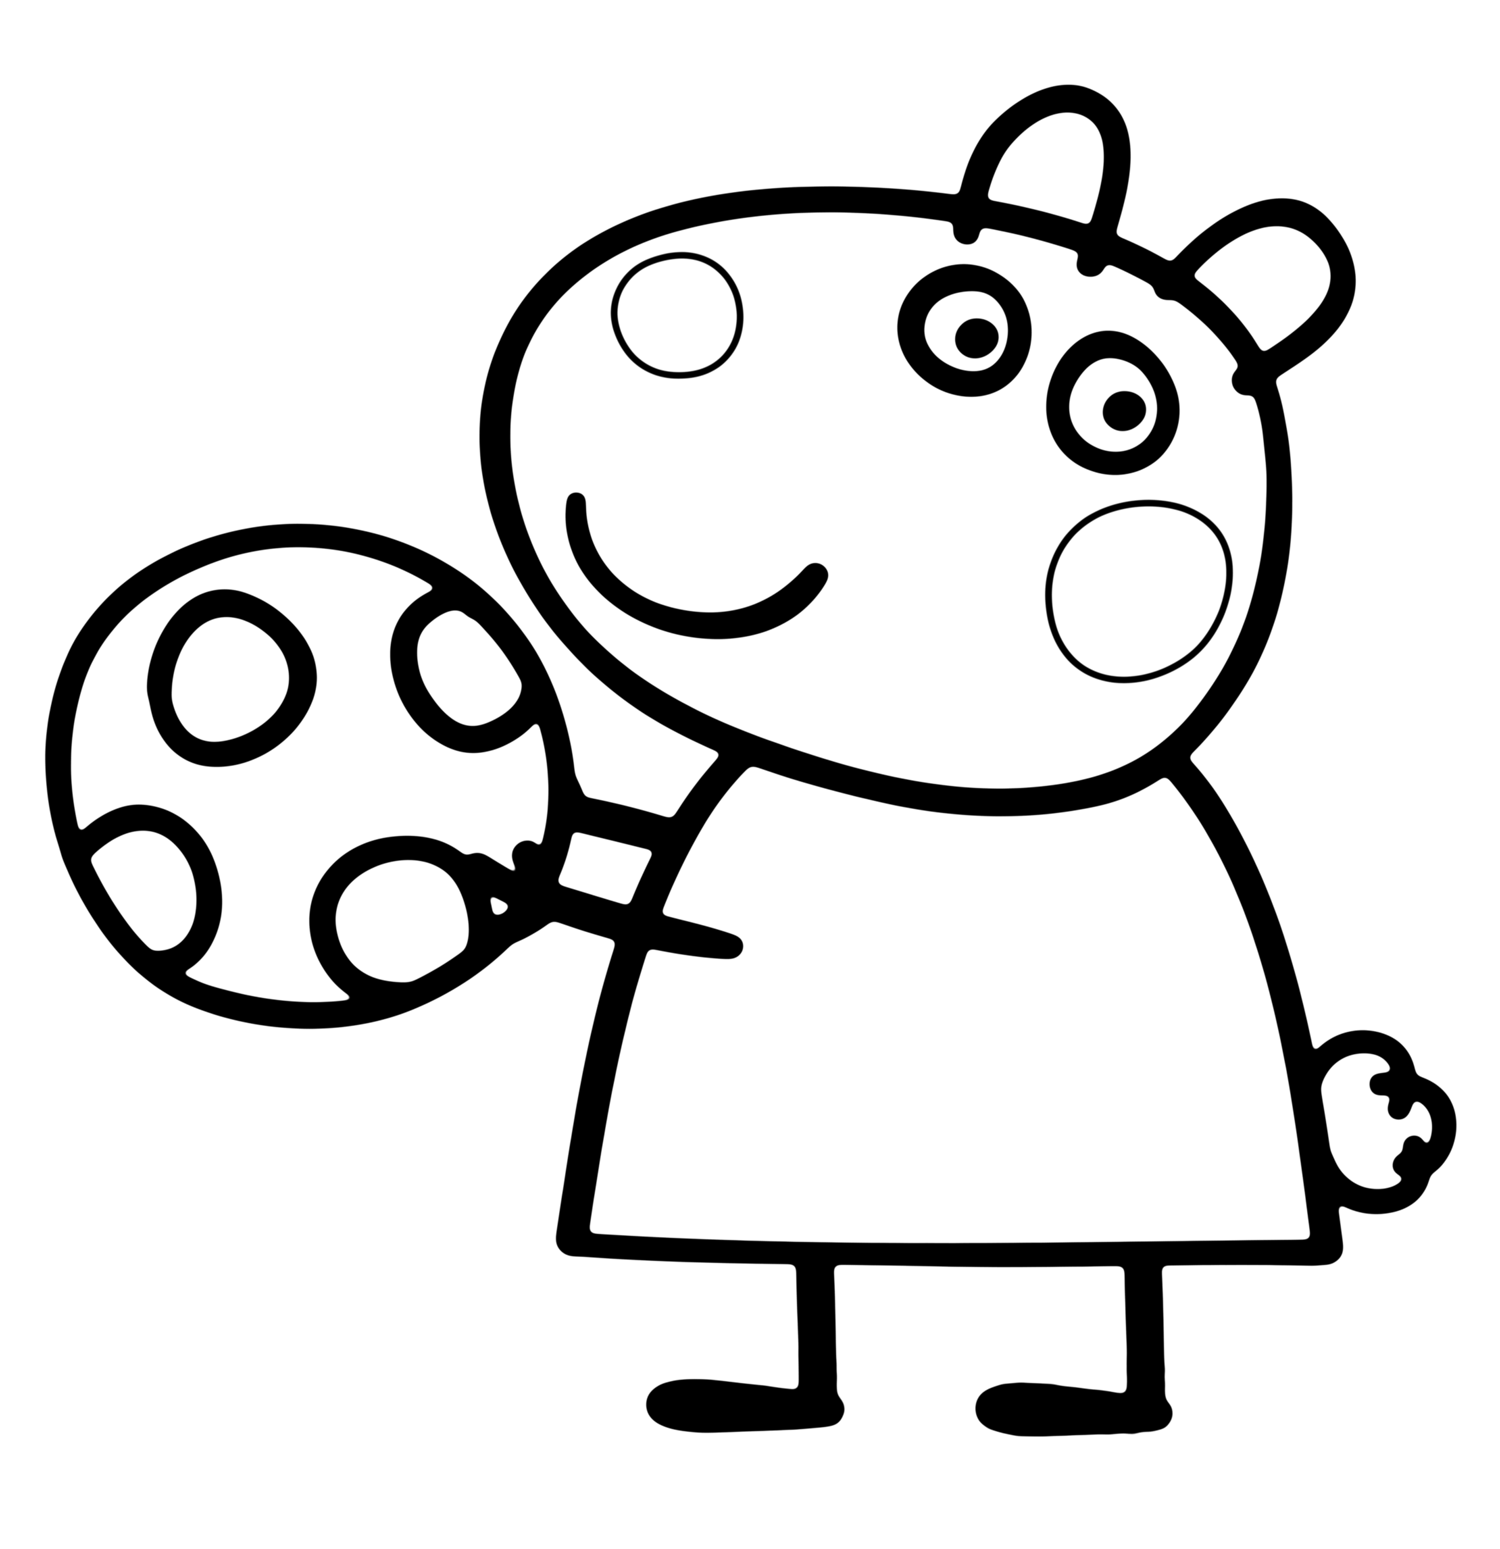 Suzy Sheep Peppa Pig Coloring Pages Sketch Coloring Page